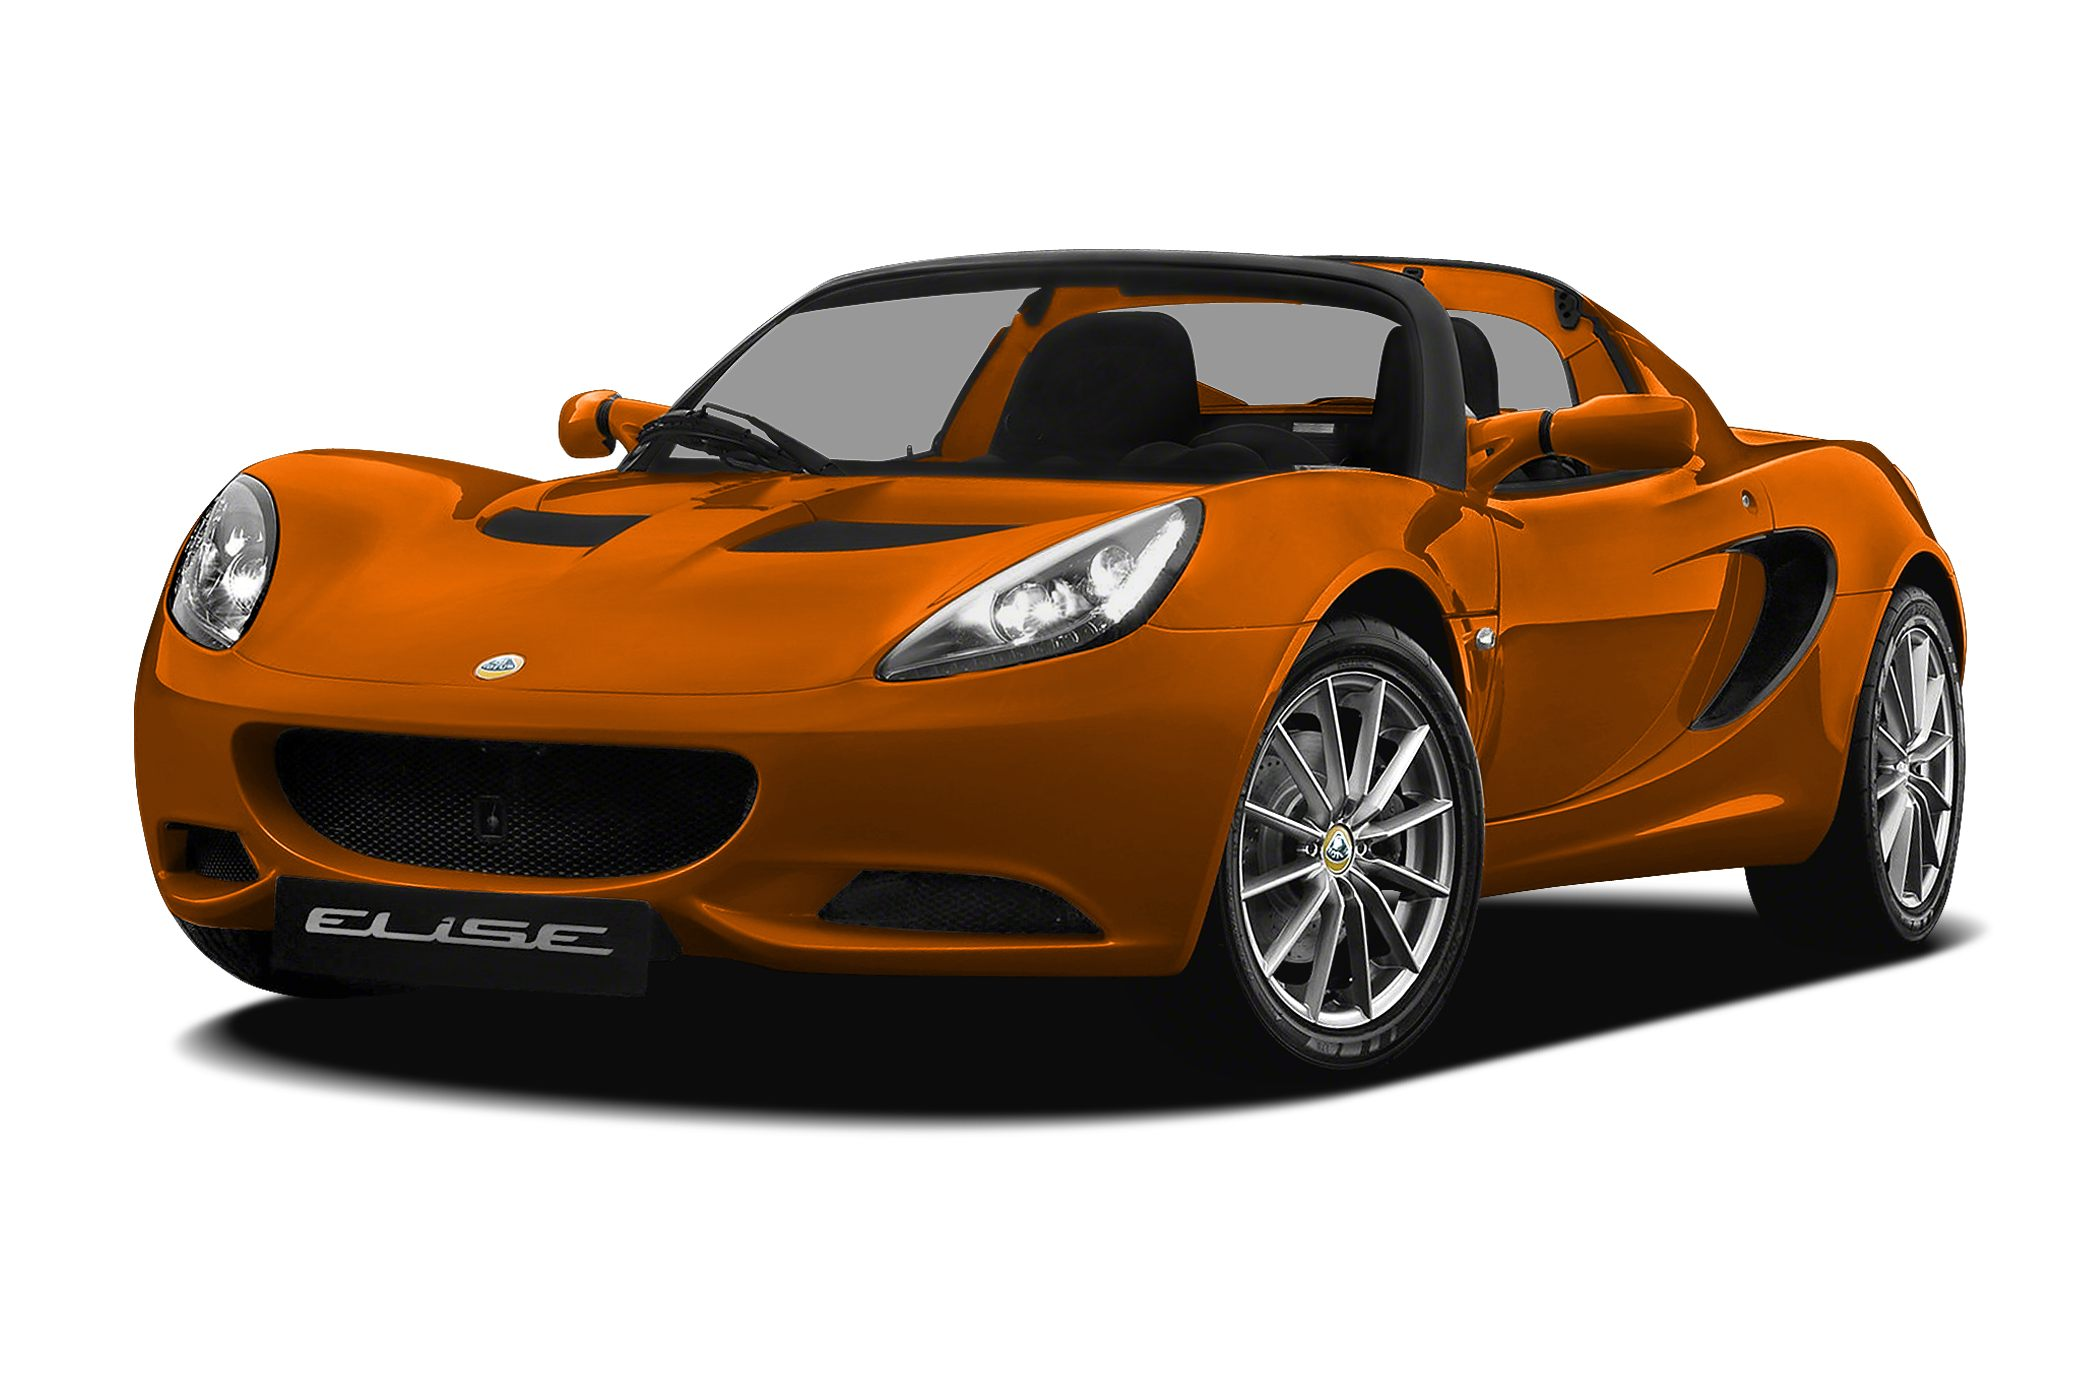 2011 Lotus Elise